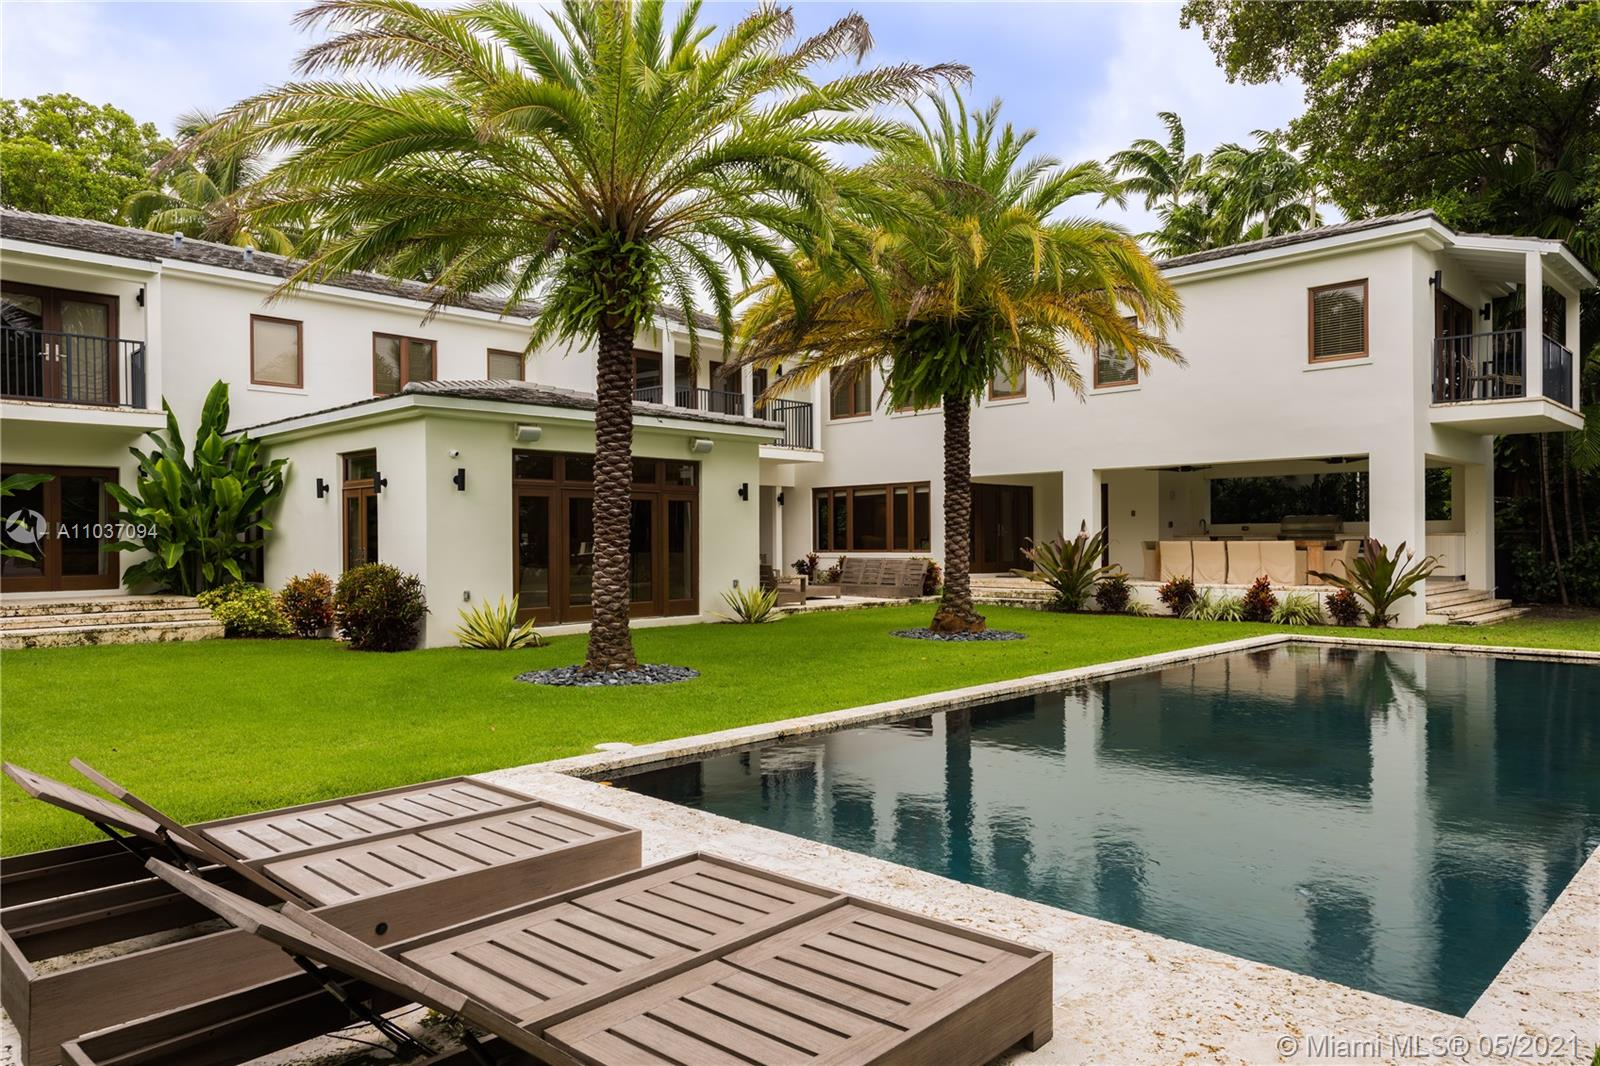 FULLY RENOVATED, 2-STORY WATERFRONT HOME ON A PRIVATE AND GATED COMPOUND LOCATED ON SUNSET ISLAND I. 7,725 SF INTERIOR ON A 20,000 SF LOT WITH 100 FEET ON THE WATER. HOME FEATURES 7 BEDROOMS, 8.5 BATHROOMS, IMPACT WINDOWS & DOORS, GUEST HOUSE, MEDIA ROOM, COVERED PATIO, BALCONIES, MOTORCOURT WITH AMPLE PARKING,  2-CAR GARAGE, LUSH LANDSCAPING, GOURMET KITCHEN, HEATED SWIMMING POOL, OUTDOOR KITCHEN + BBQ, OUTDOOR SHOWER, PRIVATE DOCK WITH BOAT LIFT. WALKING DISTANCE TO SUNSET HARBOUR, CLOSE PROXIMITY TO LINCOLN ROAD, I-95, HOSPITALS, SCHOOLS, AND PARKS.